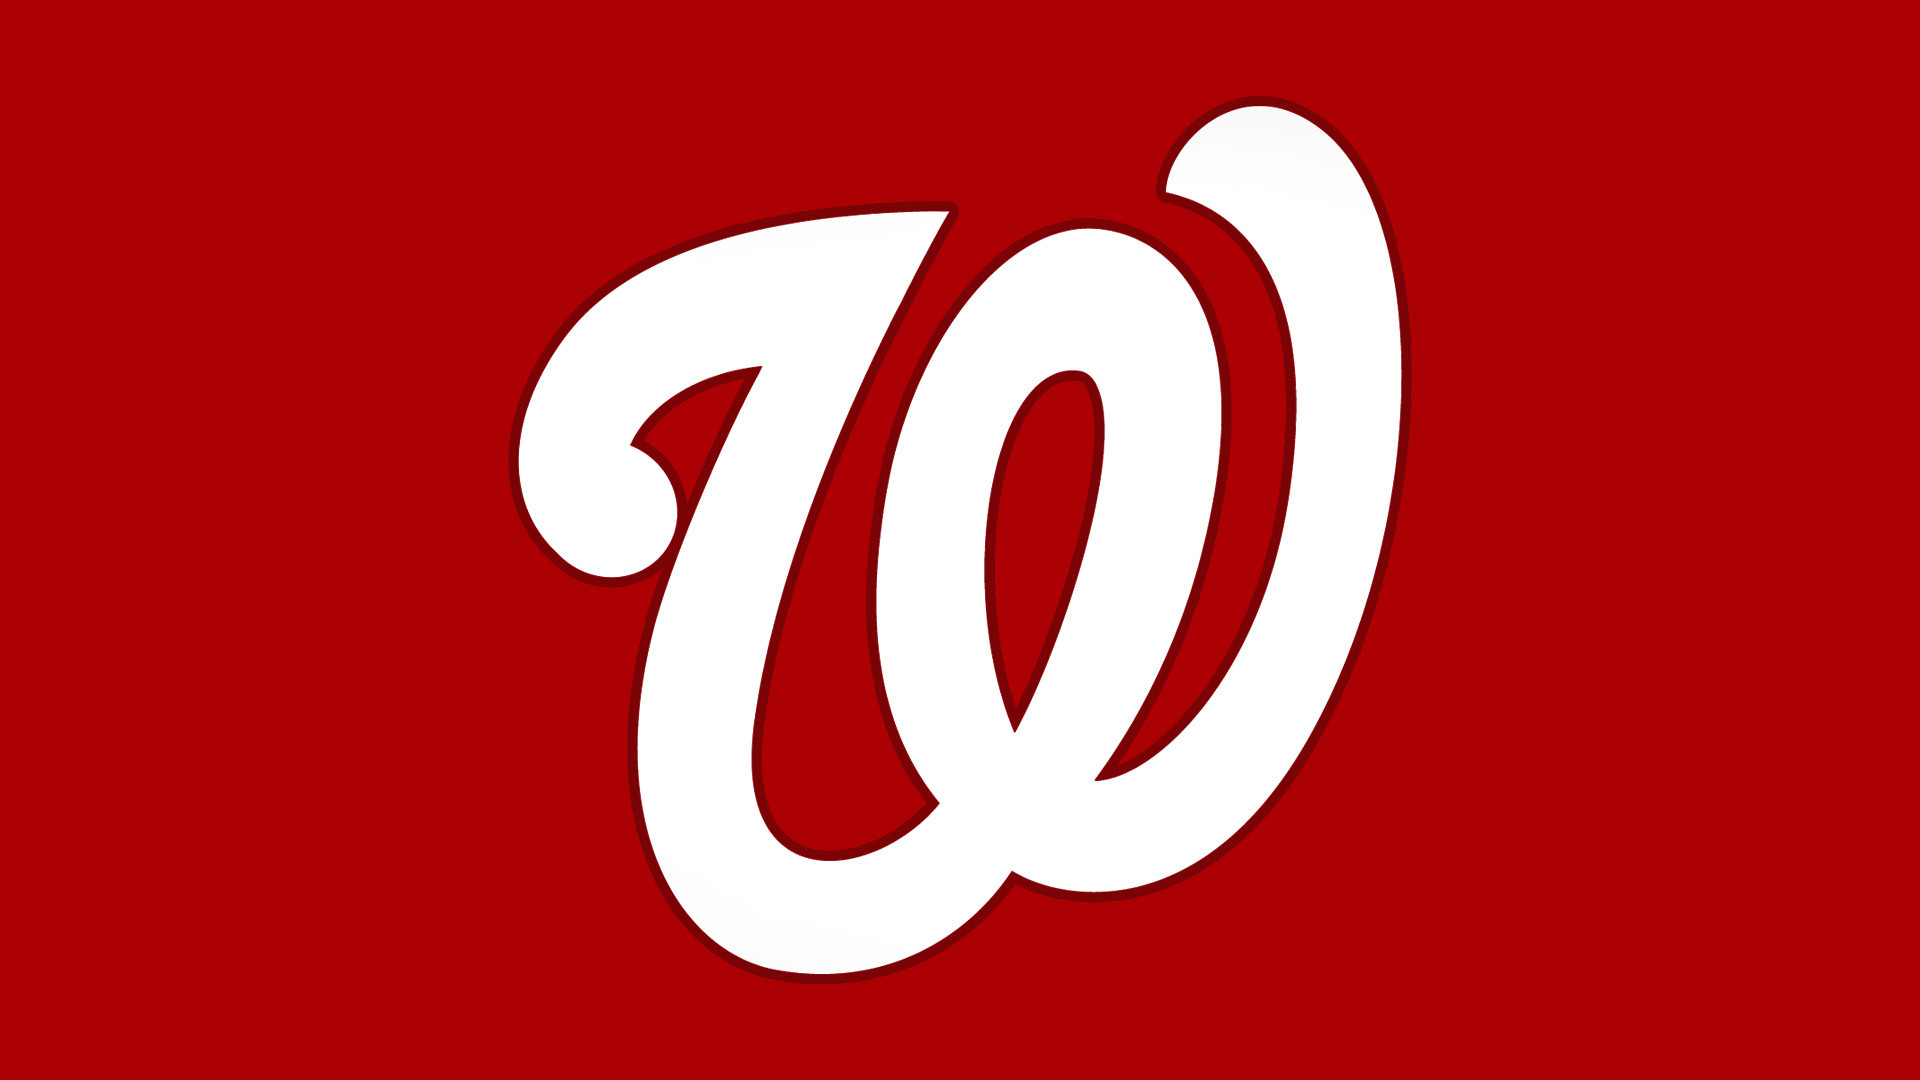 Washington Nationals iPhone Wallpaper 62 images 1920x1080